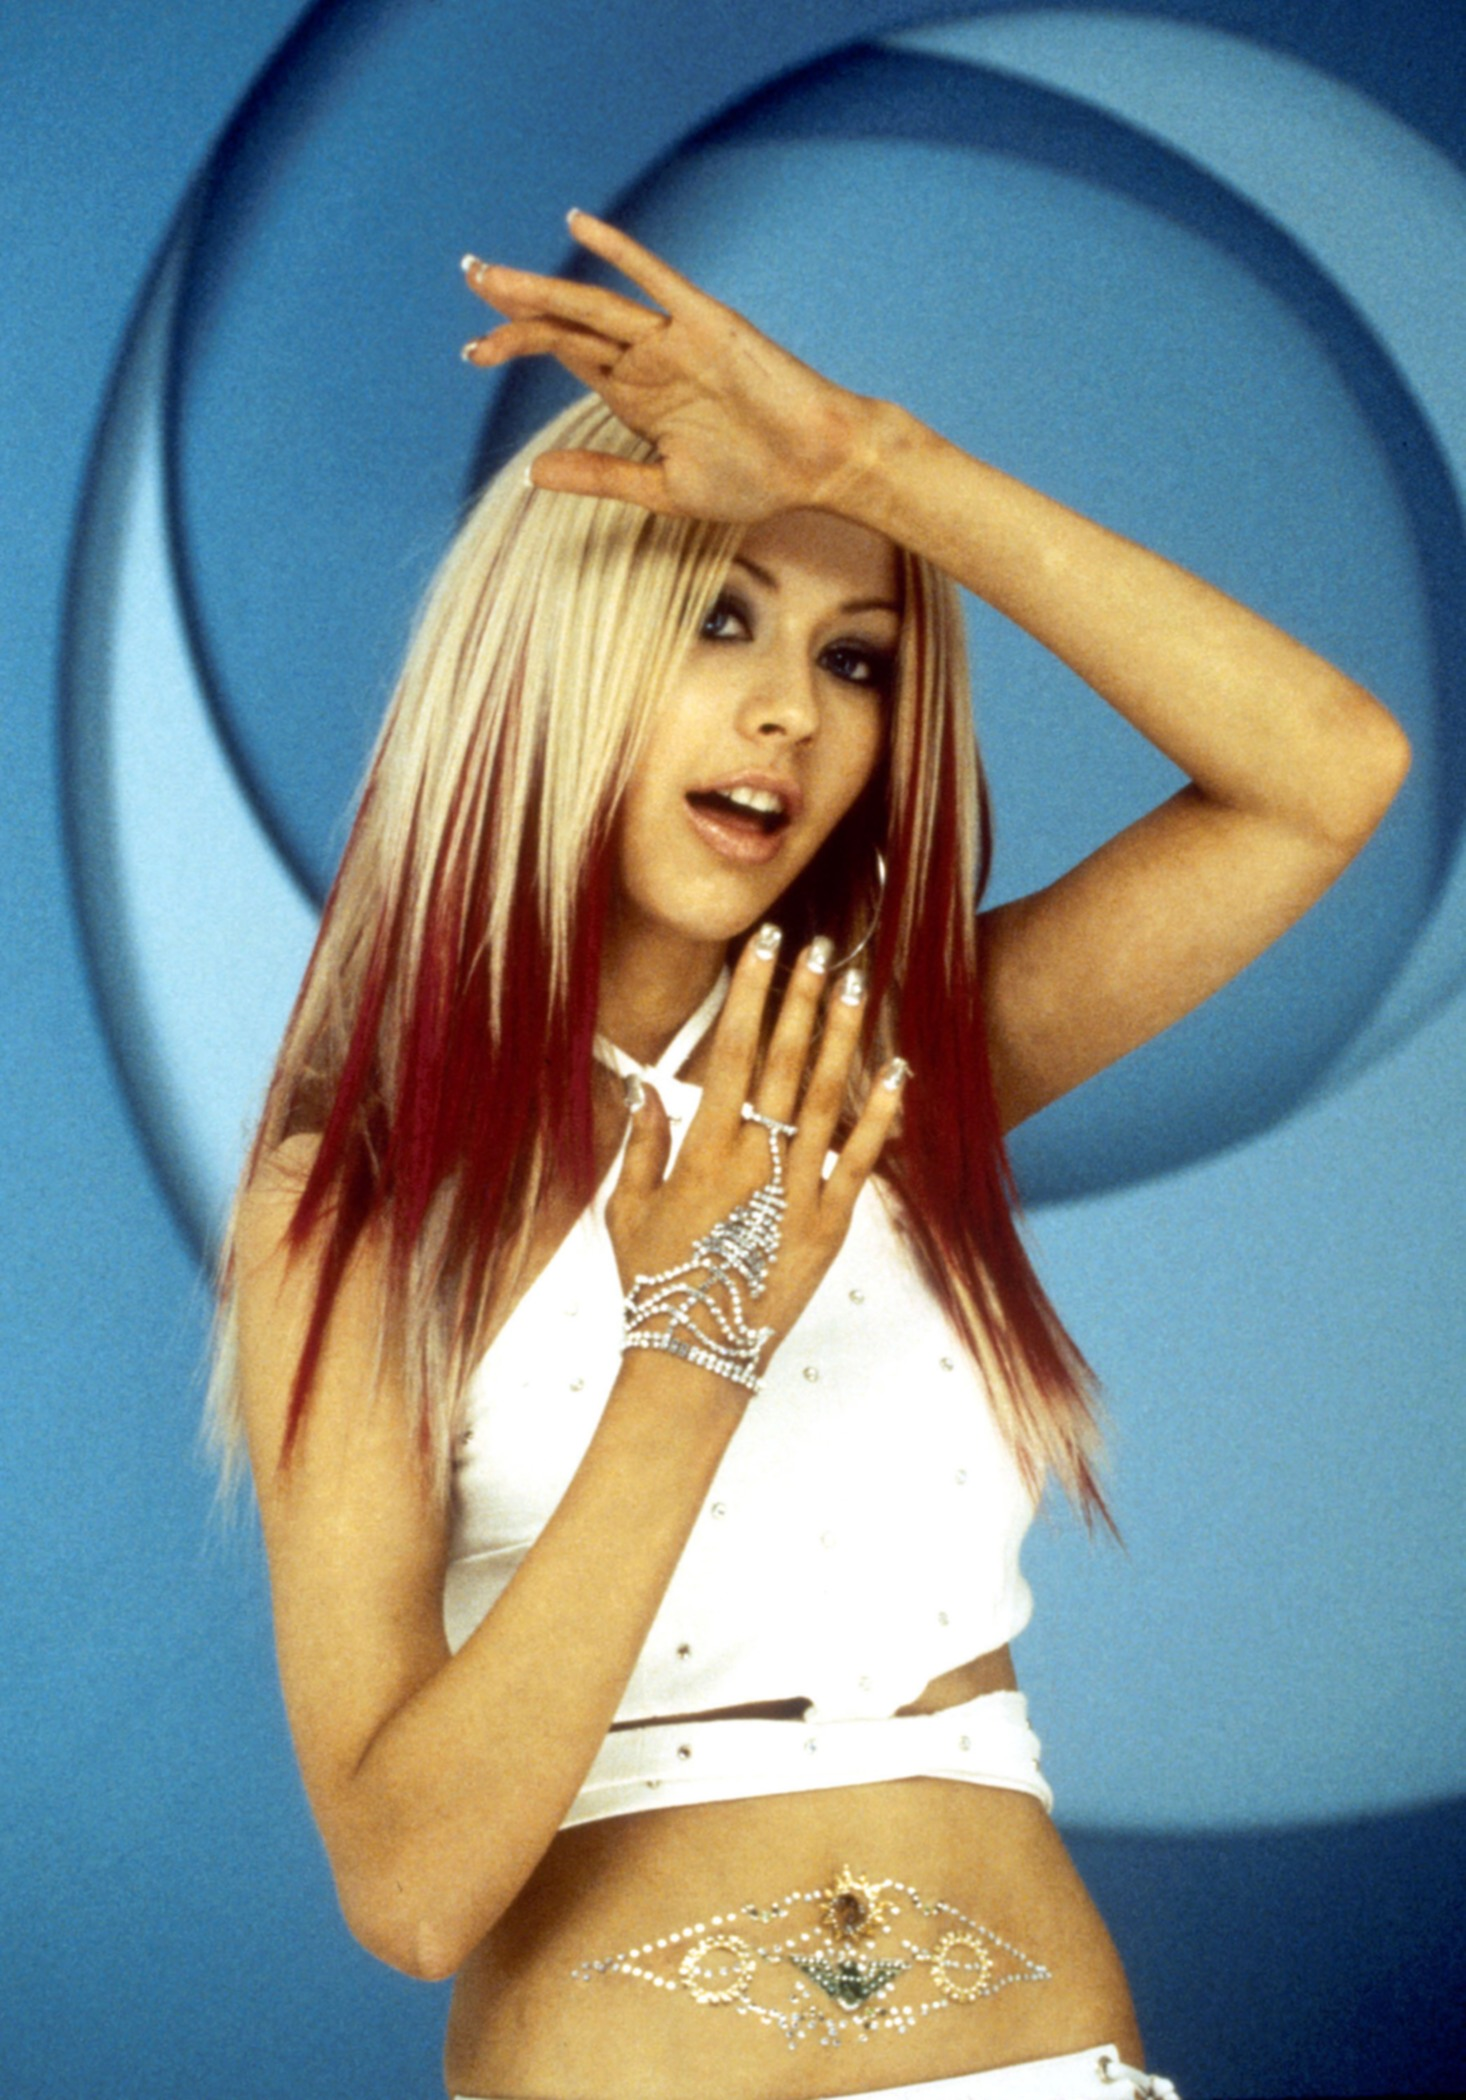 49720_Christina_Aguilera-019599_91Come_on_over_baby71_video_photoshoot8_2000_122_784lo.jpg